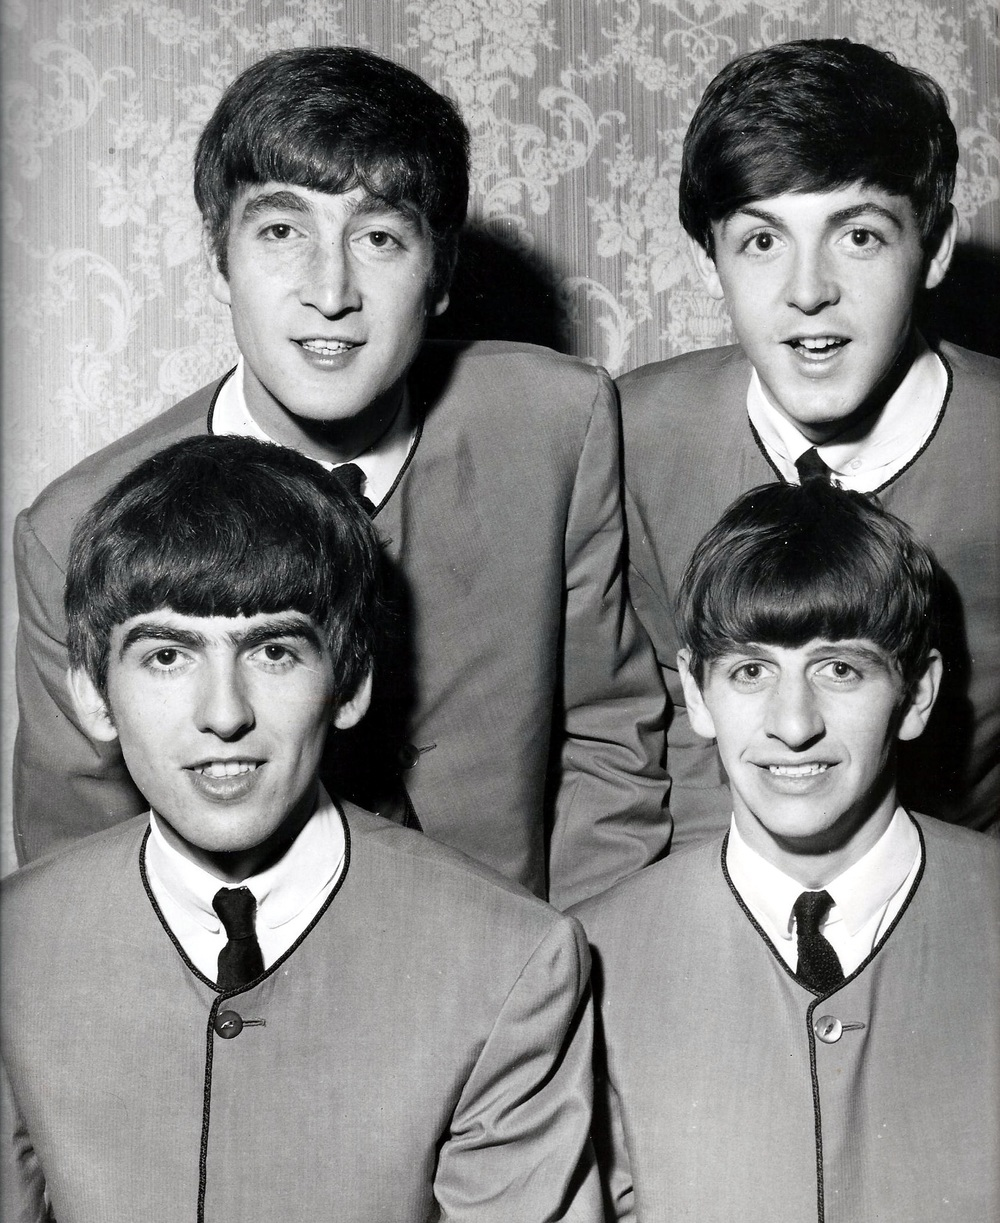 The Beatles circa 1963.